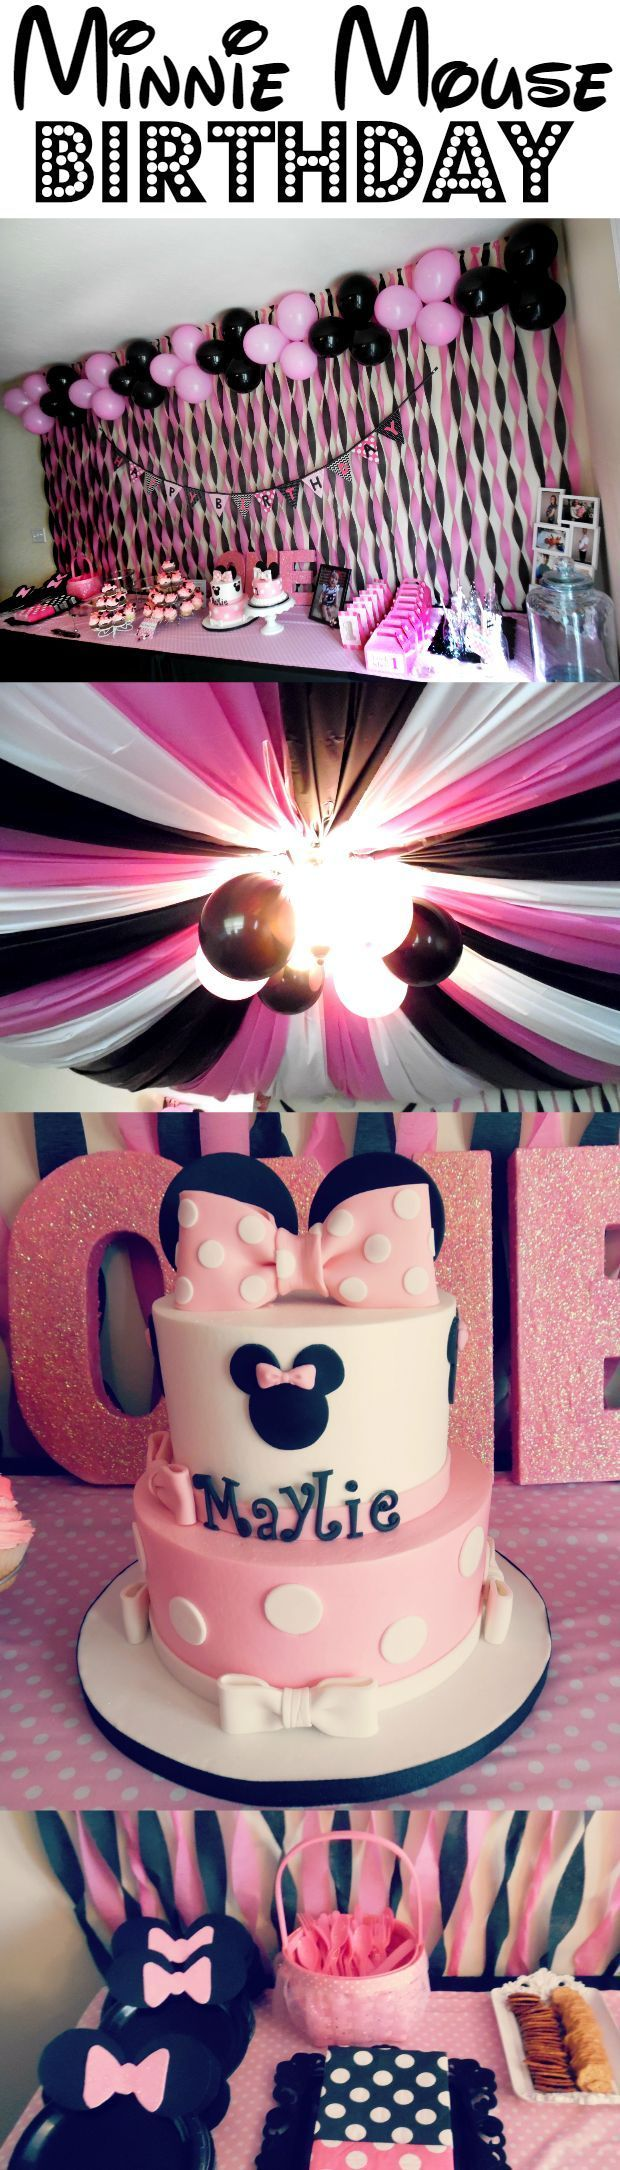 95 best party minnie mouse birthday ideas images on pinterest minnie mouse theme first birthday part girl ideas amipublicfo Choice Image